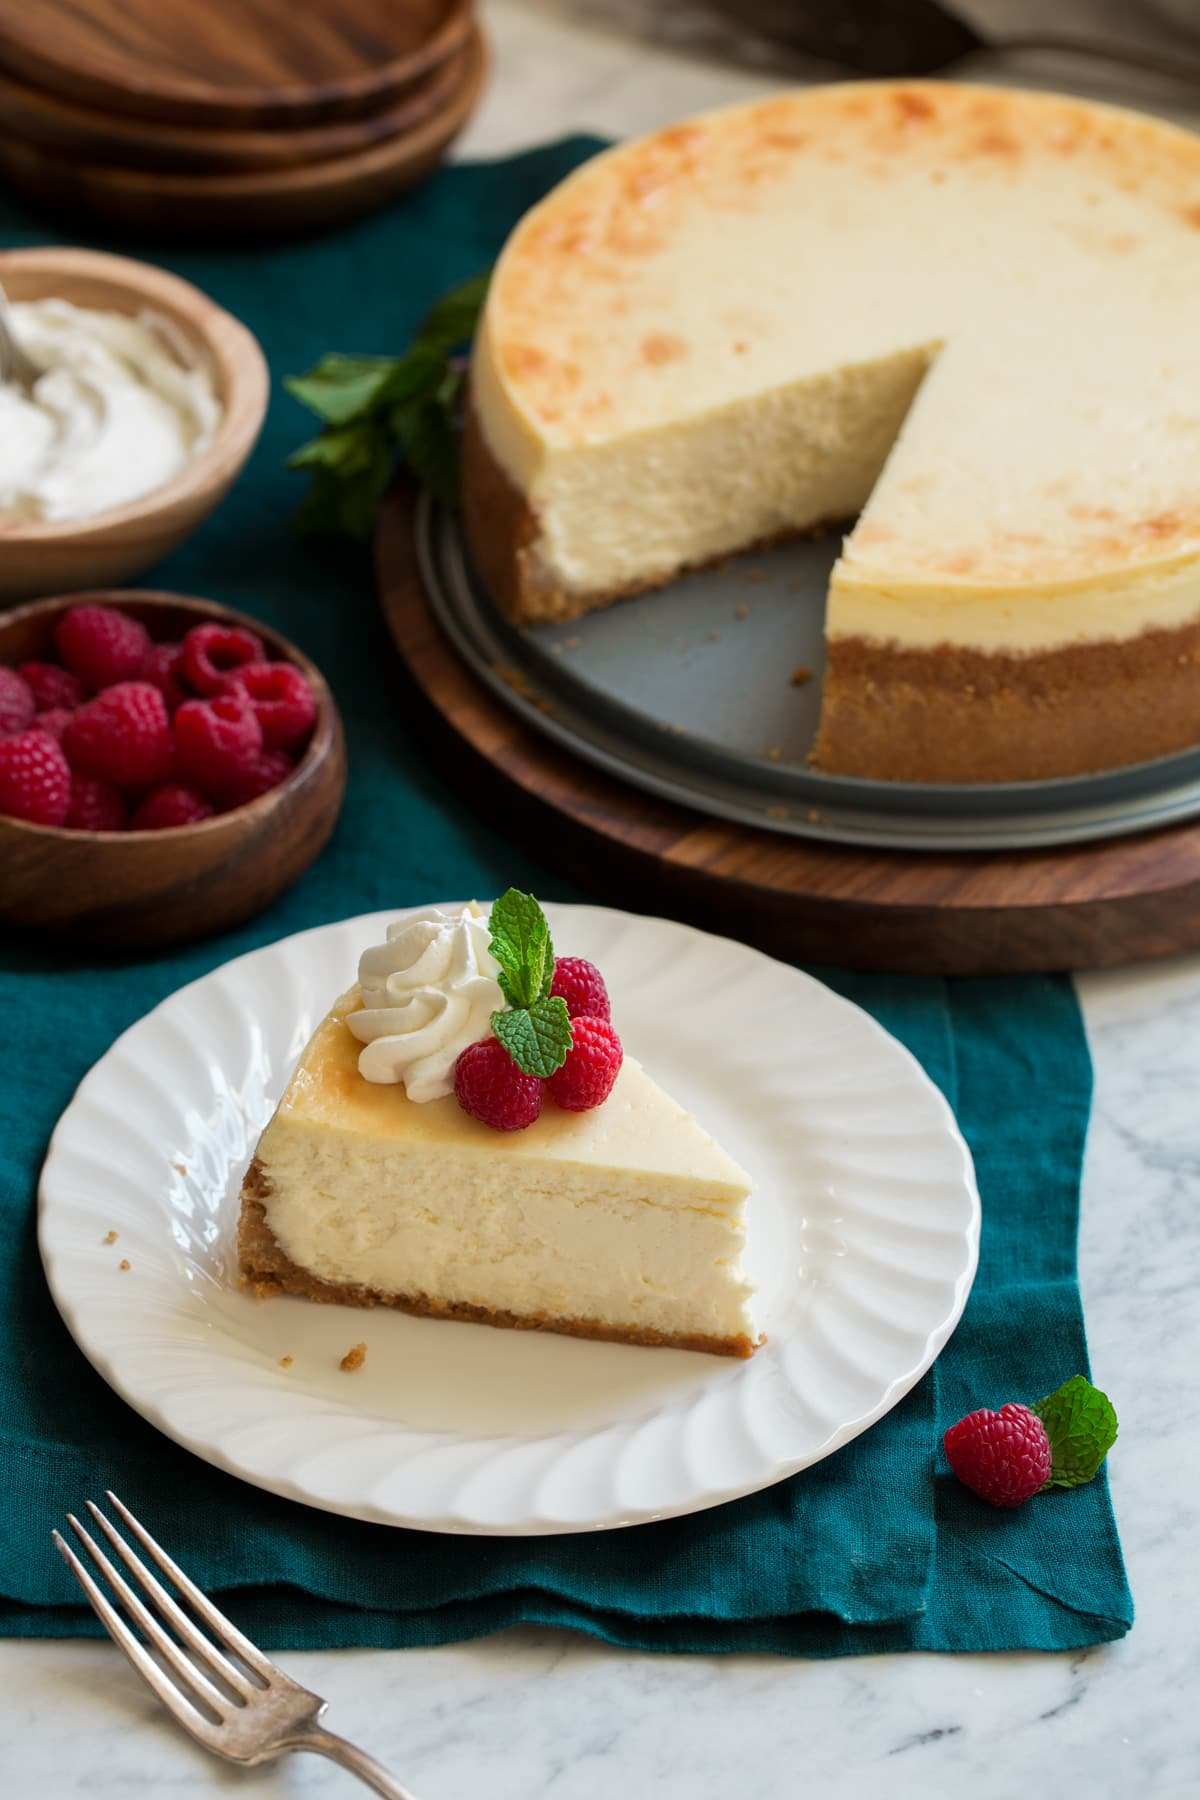 One slice of cheesecake with whole cheesecake in background.